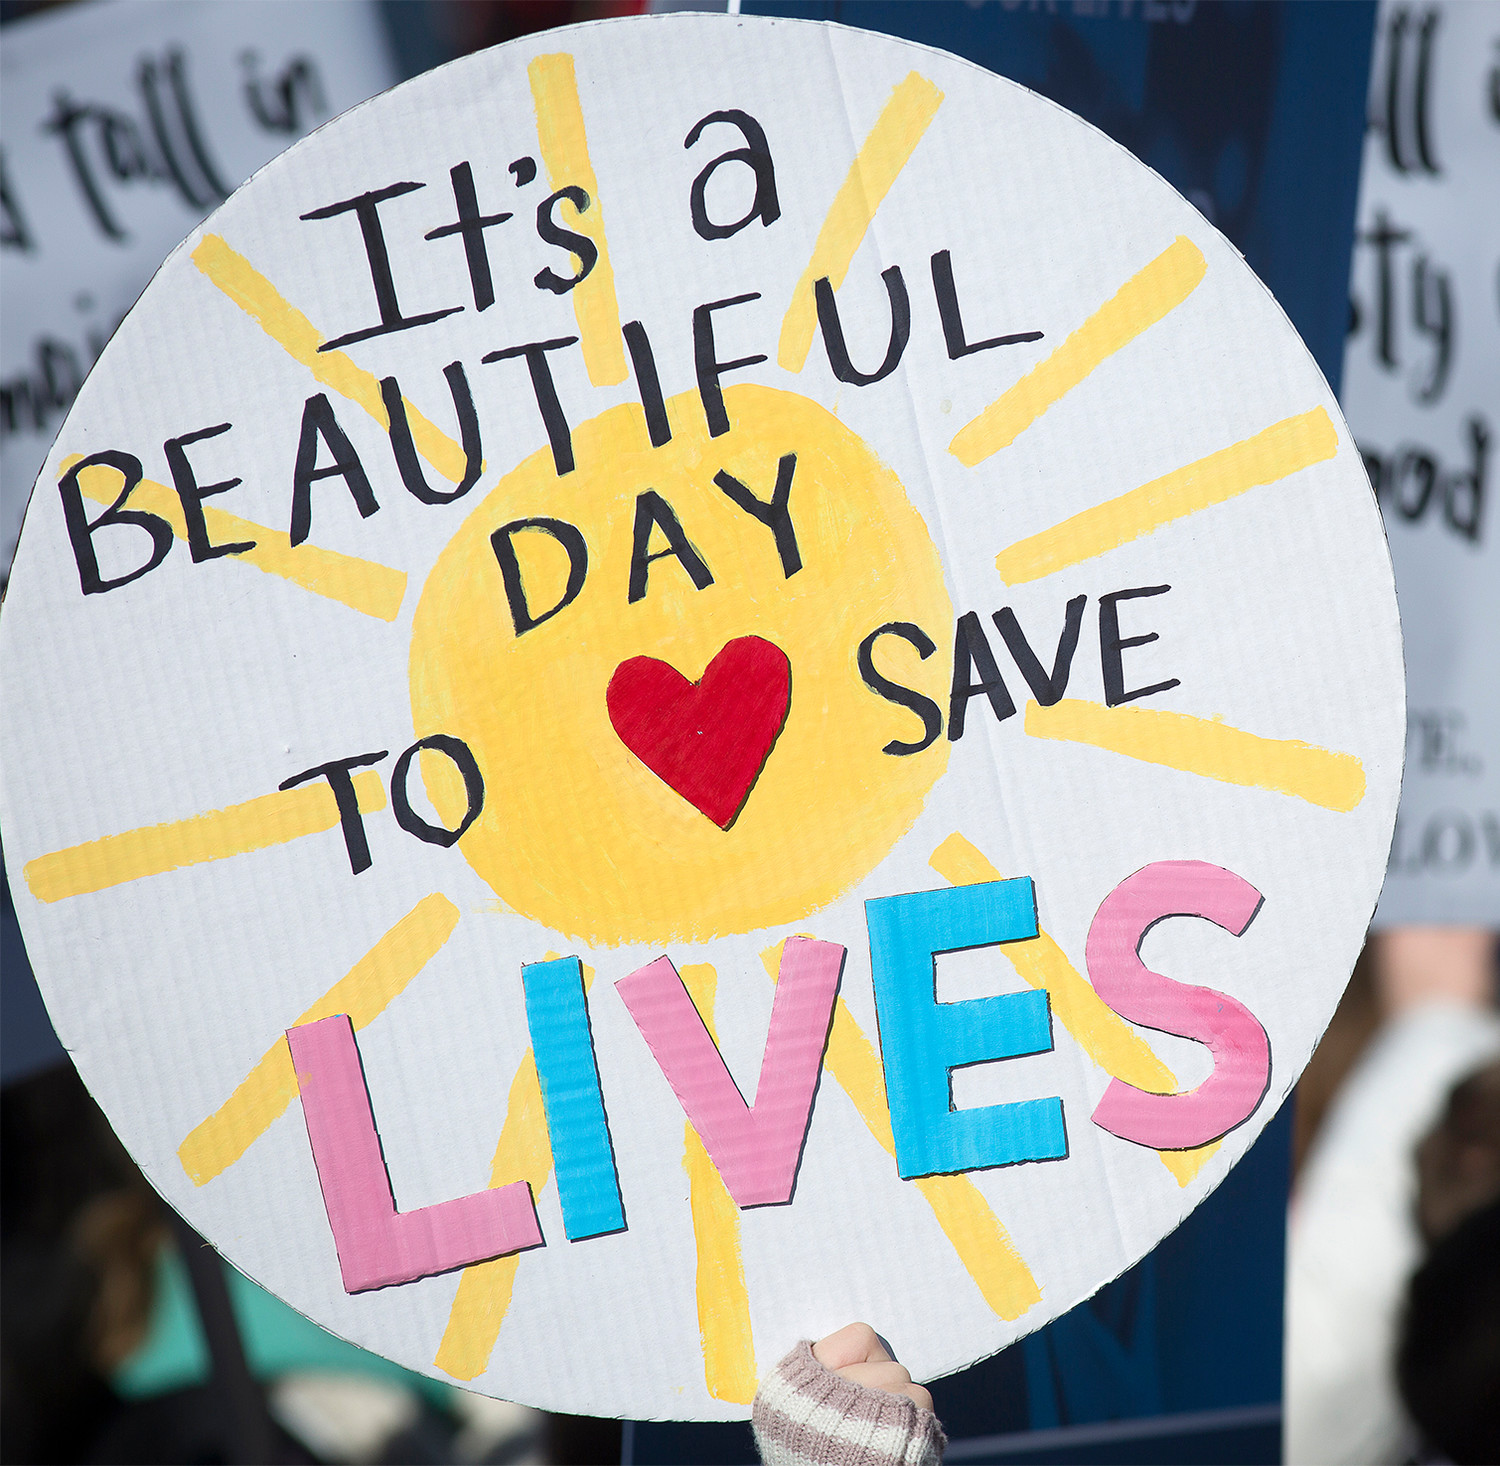 A pro-life sign is displayed during the annual March for Life rally on the National Mall.